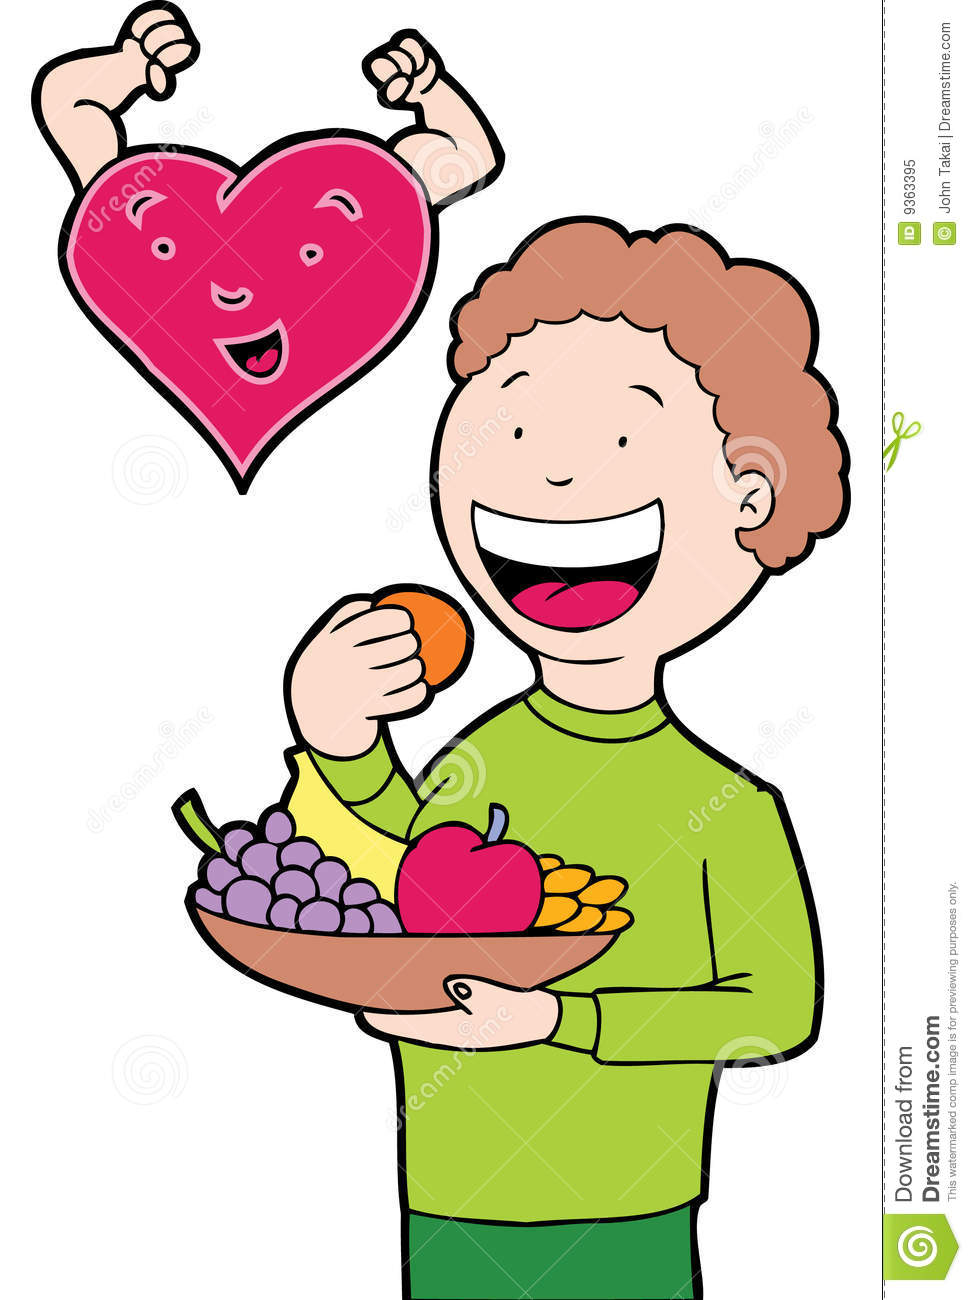 Clipart Of Healthy Person.